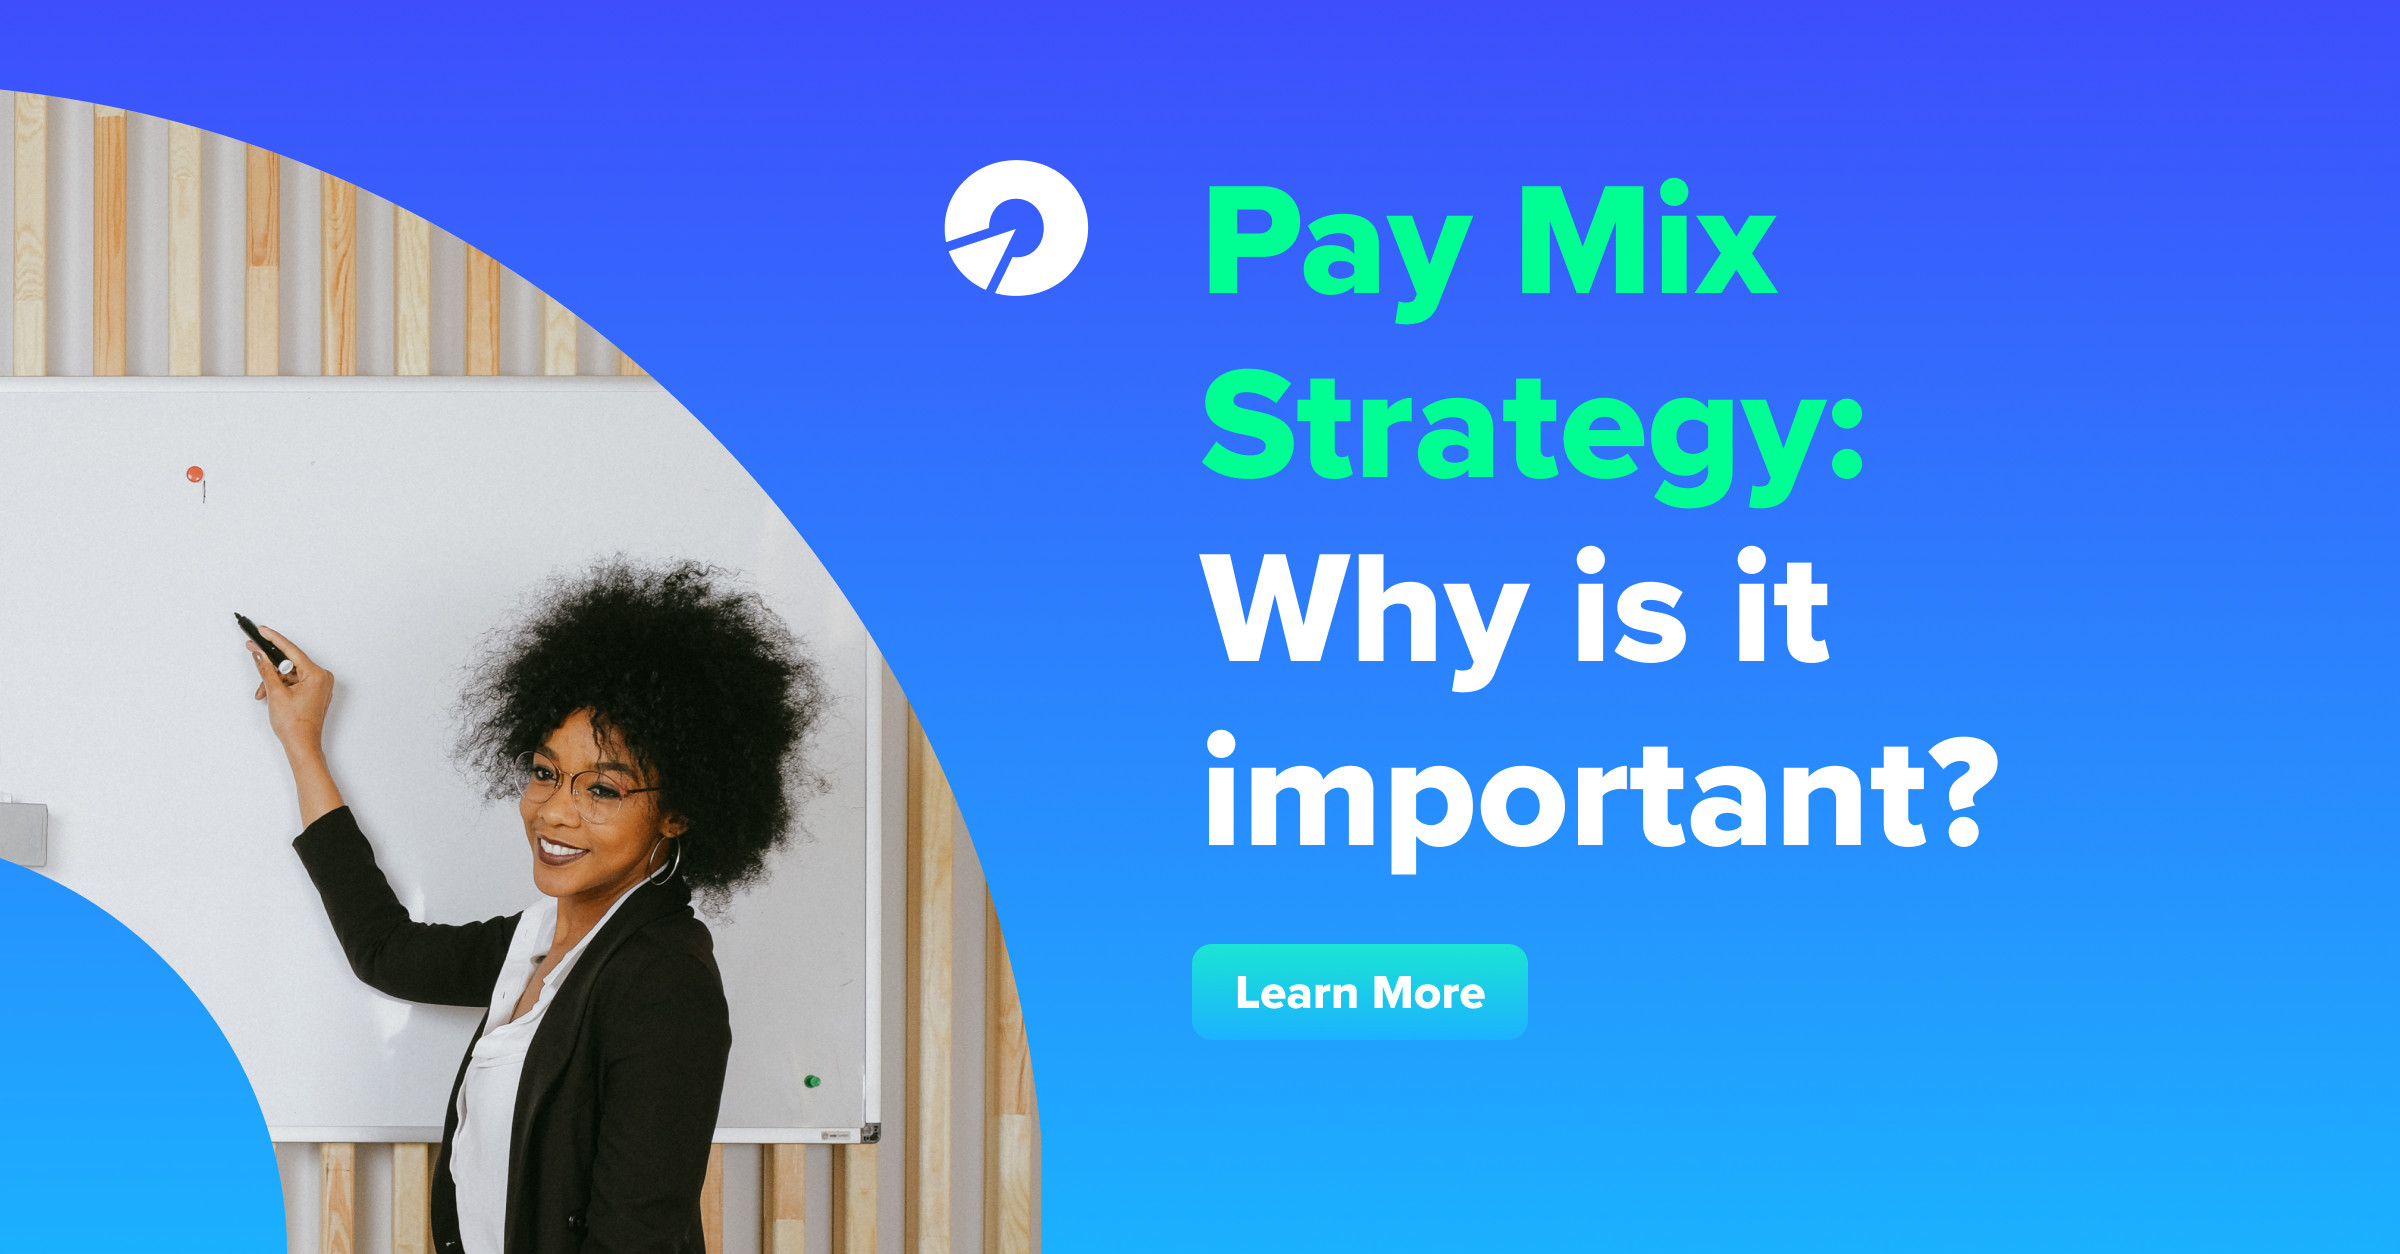 Pay Mix Strategy Why is it important?